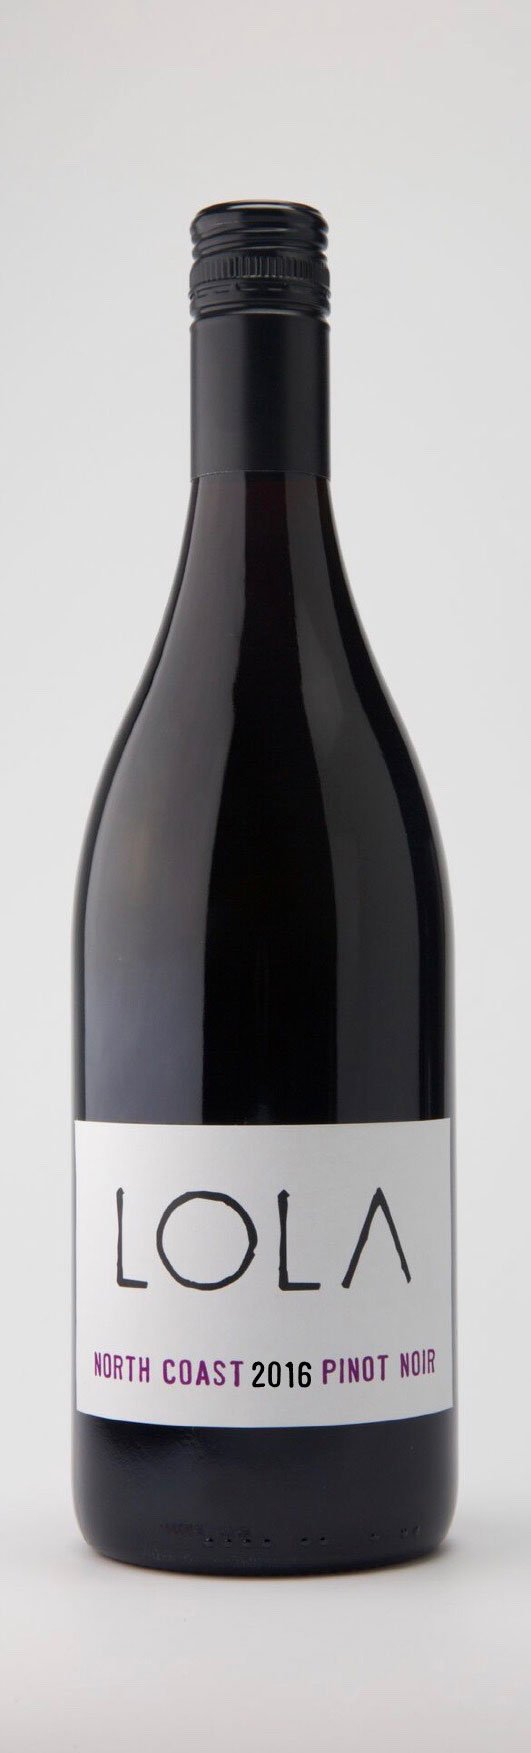 LOLA 2016 Pinot Noir, North Coast - Brix26